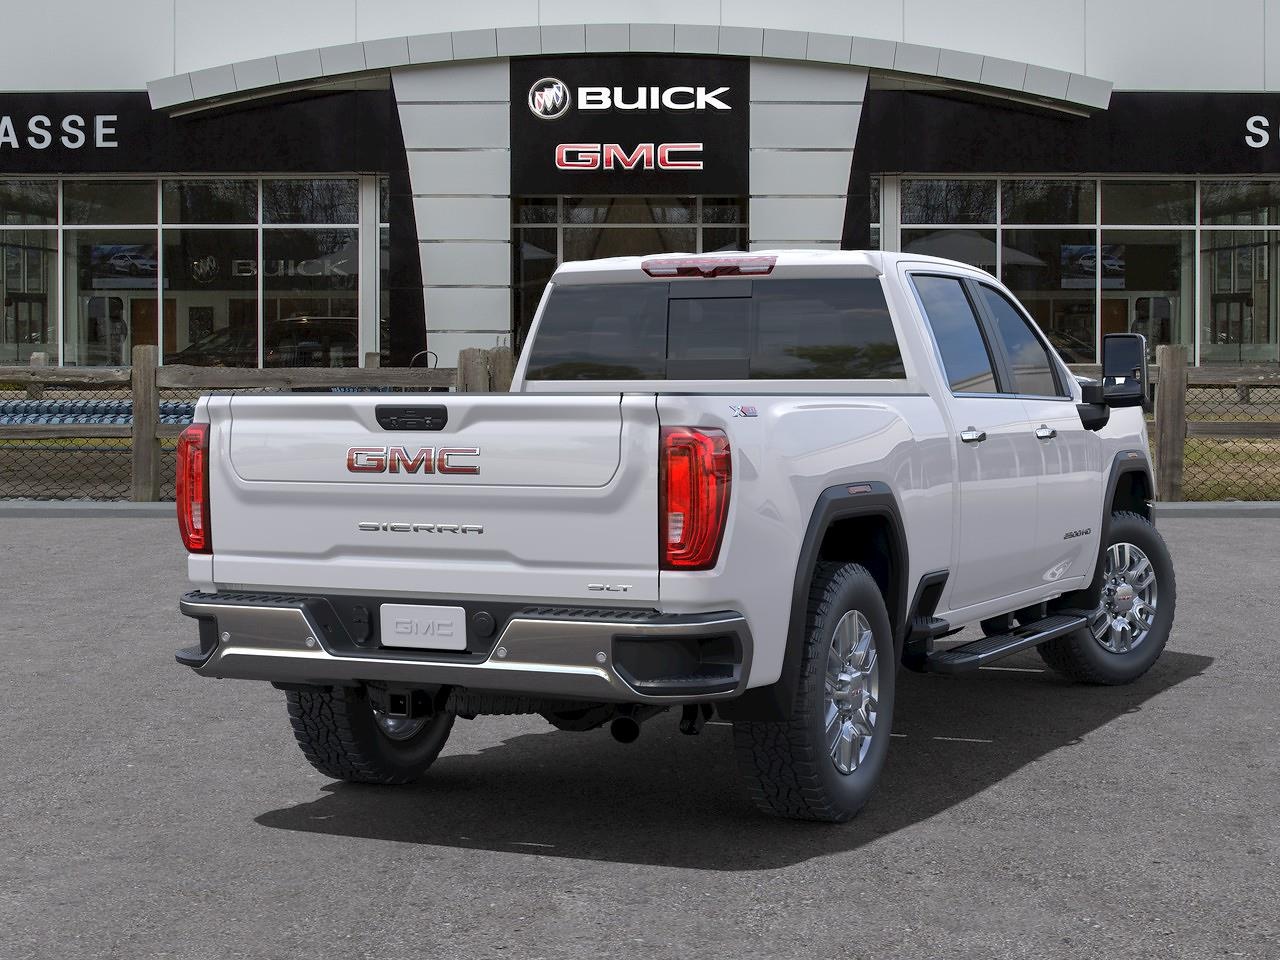 2021 GMC Sierra 2500 Crew Cab 4x4, Pickup #SR1248 - photo 2